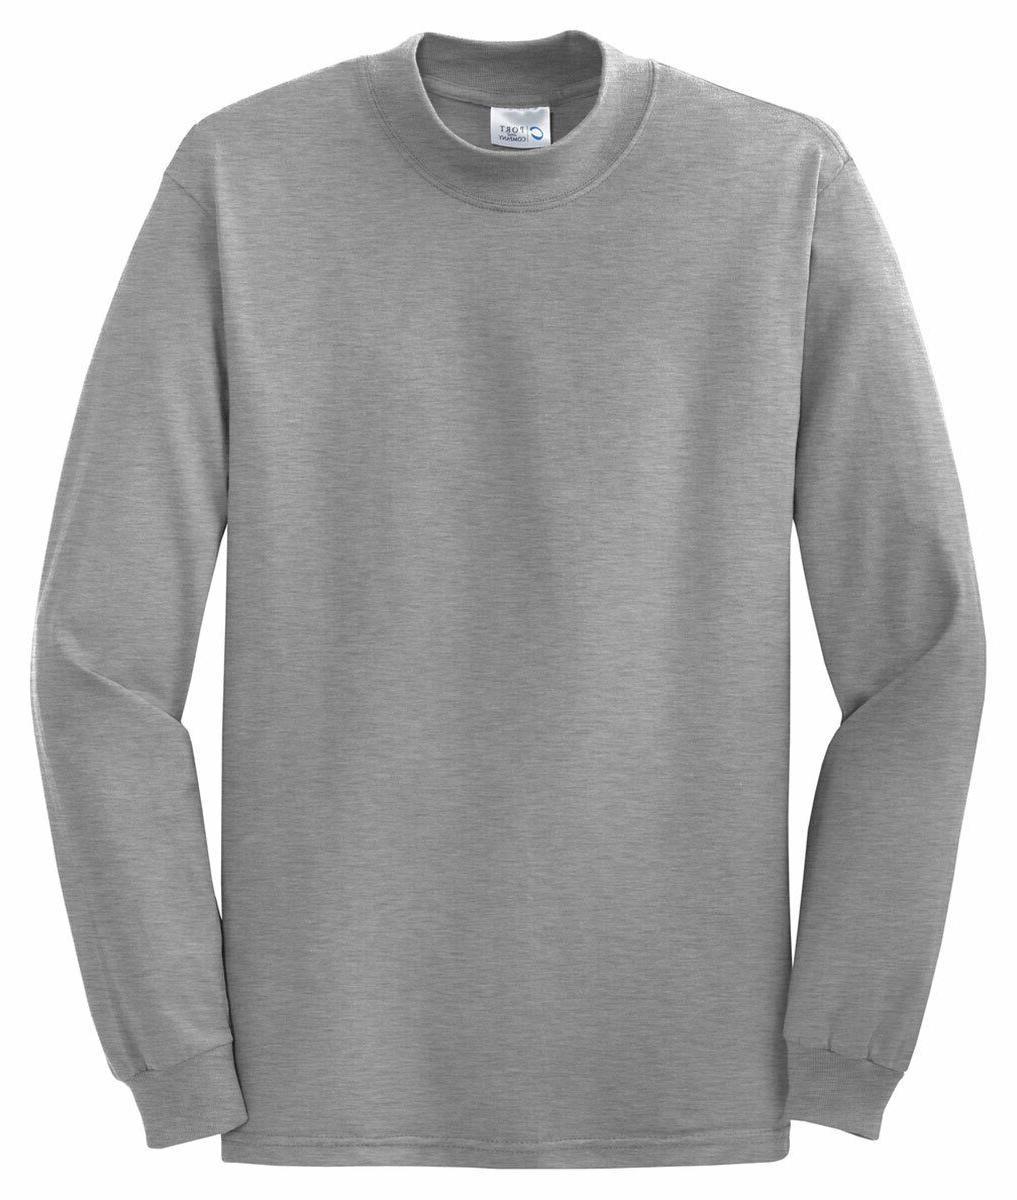 Port & Company by Hanes Mens New 100% Cotton Long Sleeve Moc